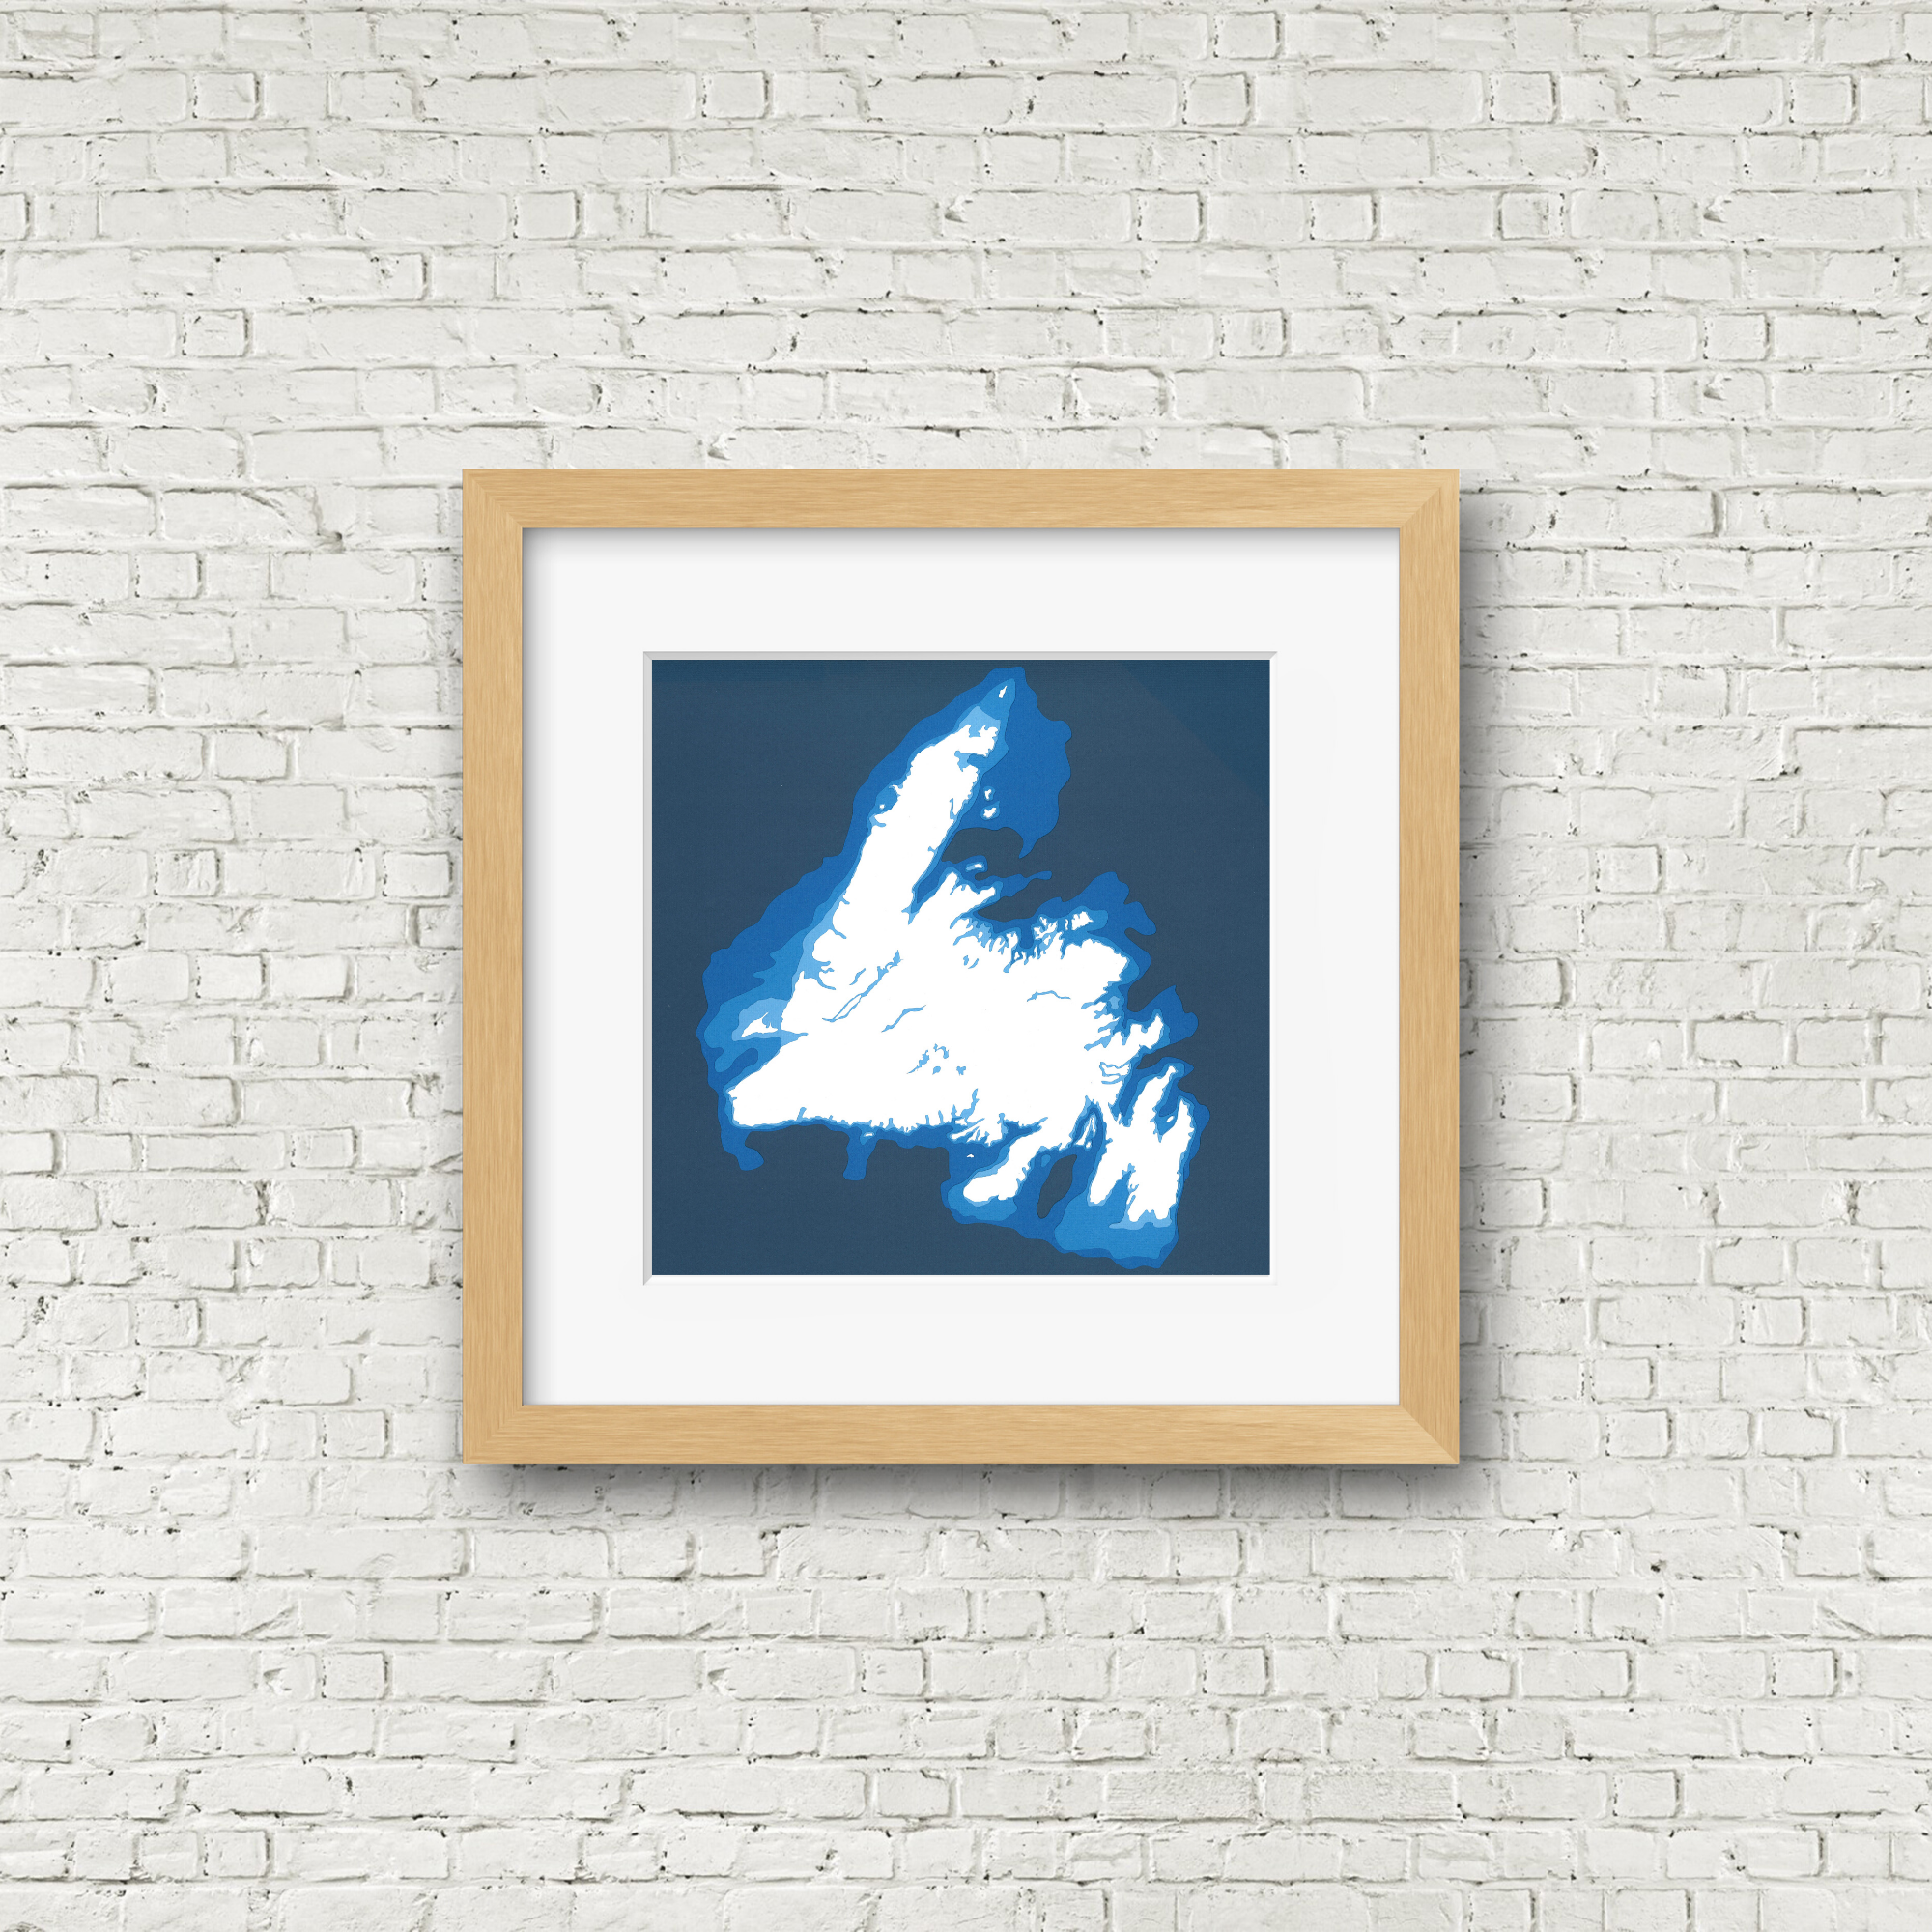 A framed image of Newfoundland where the island is white and the water is blue. The frame hangs on a white brick wall. Cardtography designs.